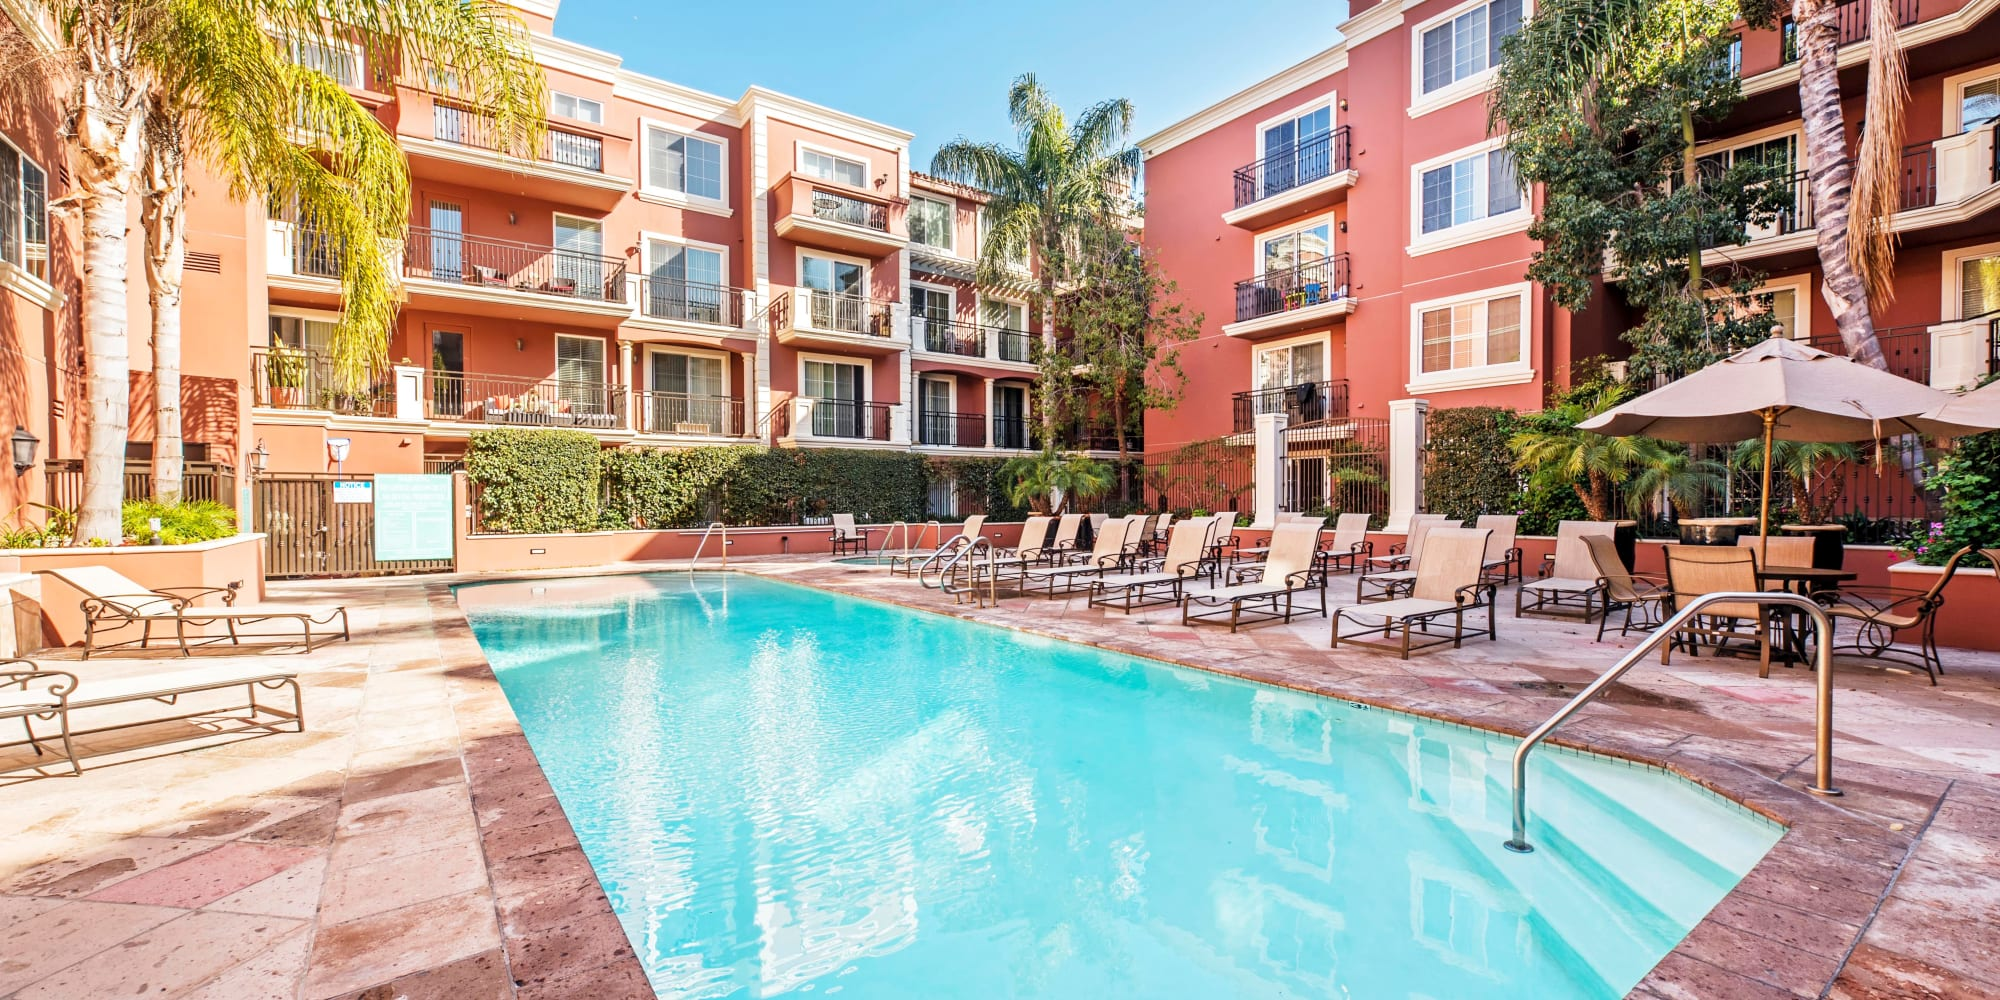 Another gorgeous day at the swimming pool at The Villa at Marina Harbor in Marina del Rey, California